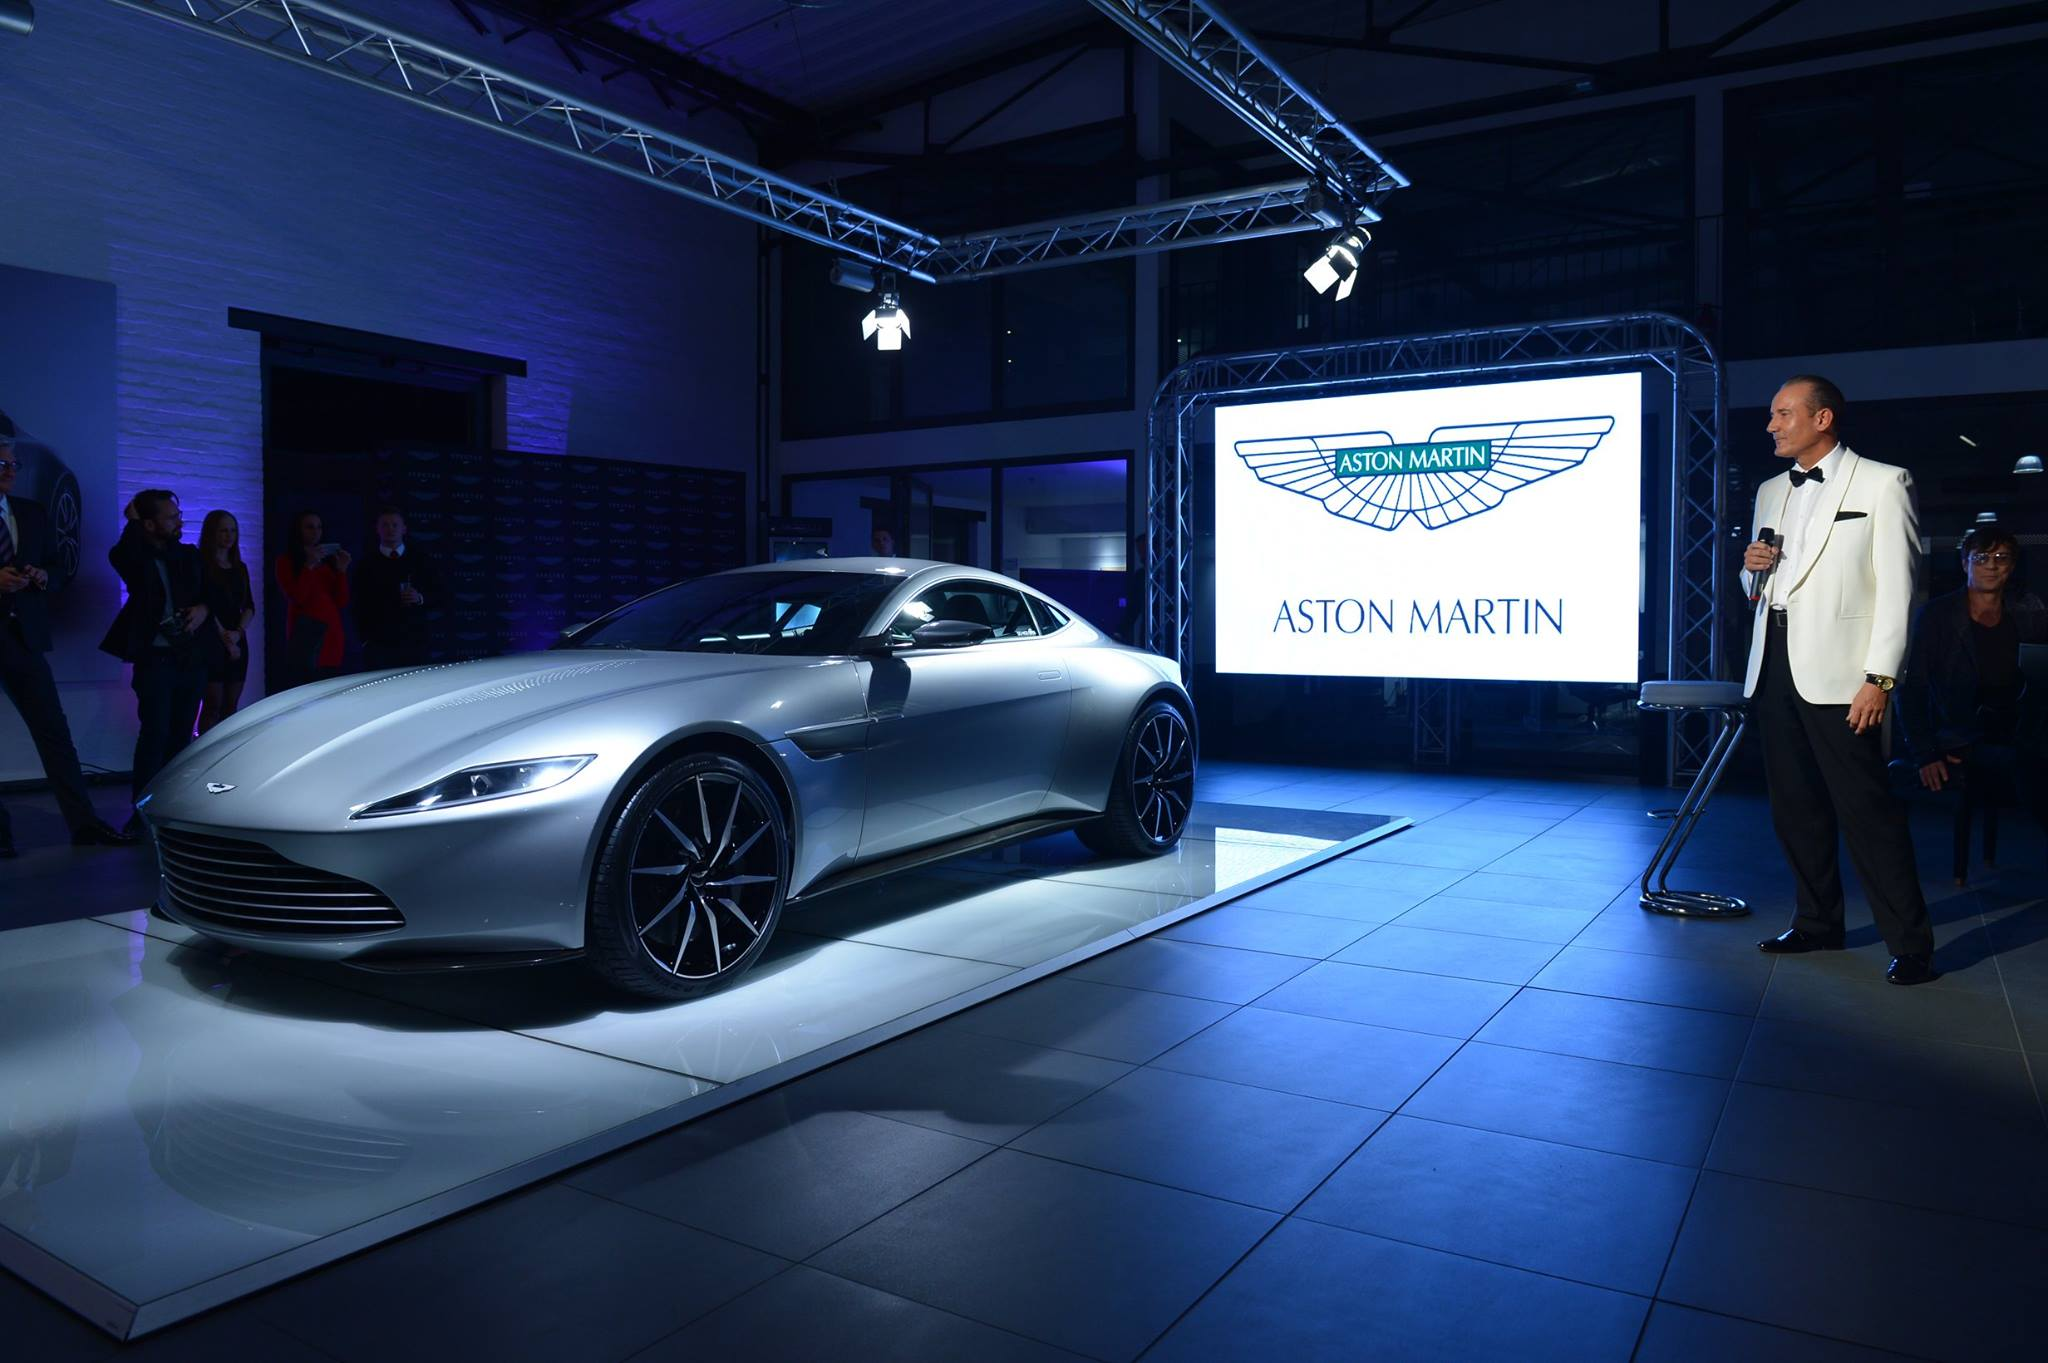 The Aston Martin DB10 SPECTRE Is Going On Auction! on aston martin suv, aston martin 4 door, aston martin skyfall, aston martin db12, aston martin vanquish, aston martin engine, aston martin zagato, aston martin db11, aston martin gt, aston martin prototype, aston martin rapide, aston martin interior, aston martin amv10, aston martin db9, aston martin db 212, aston martin db5, aston martin db7, aston martin virage, aston martin dbc, aston martin db6,